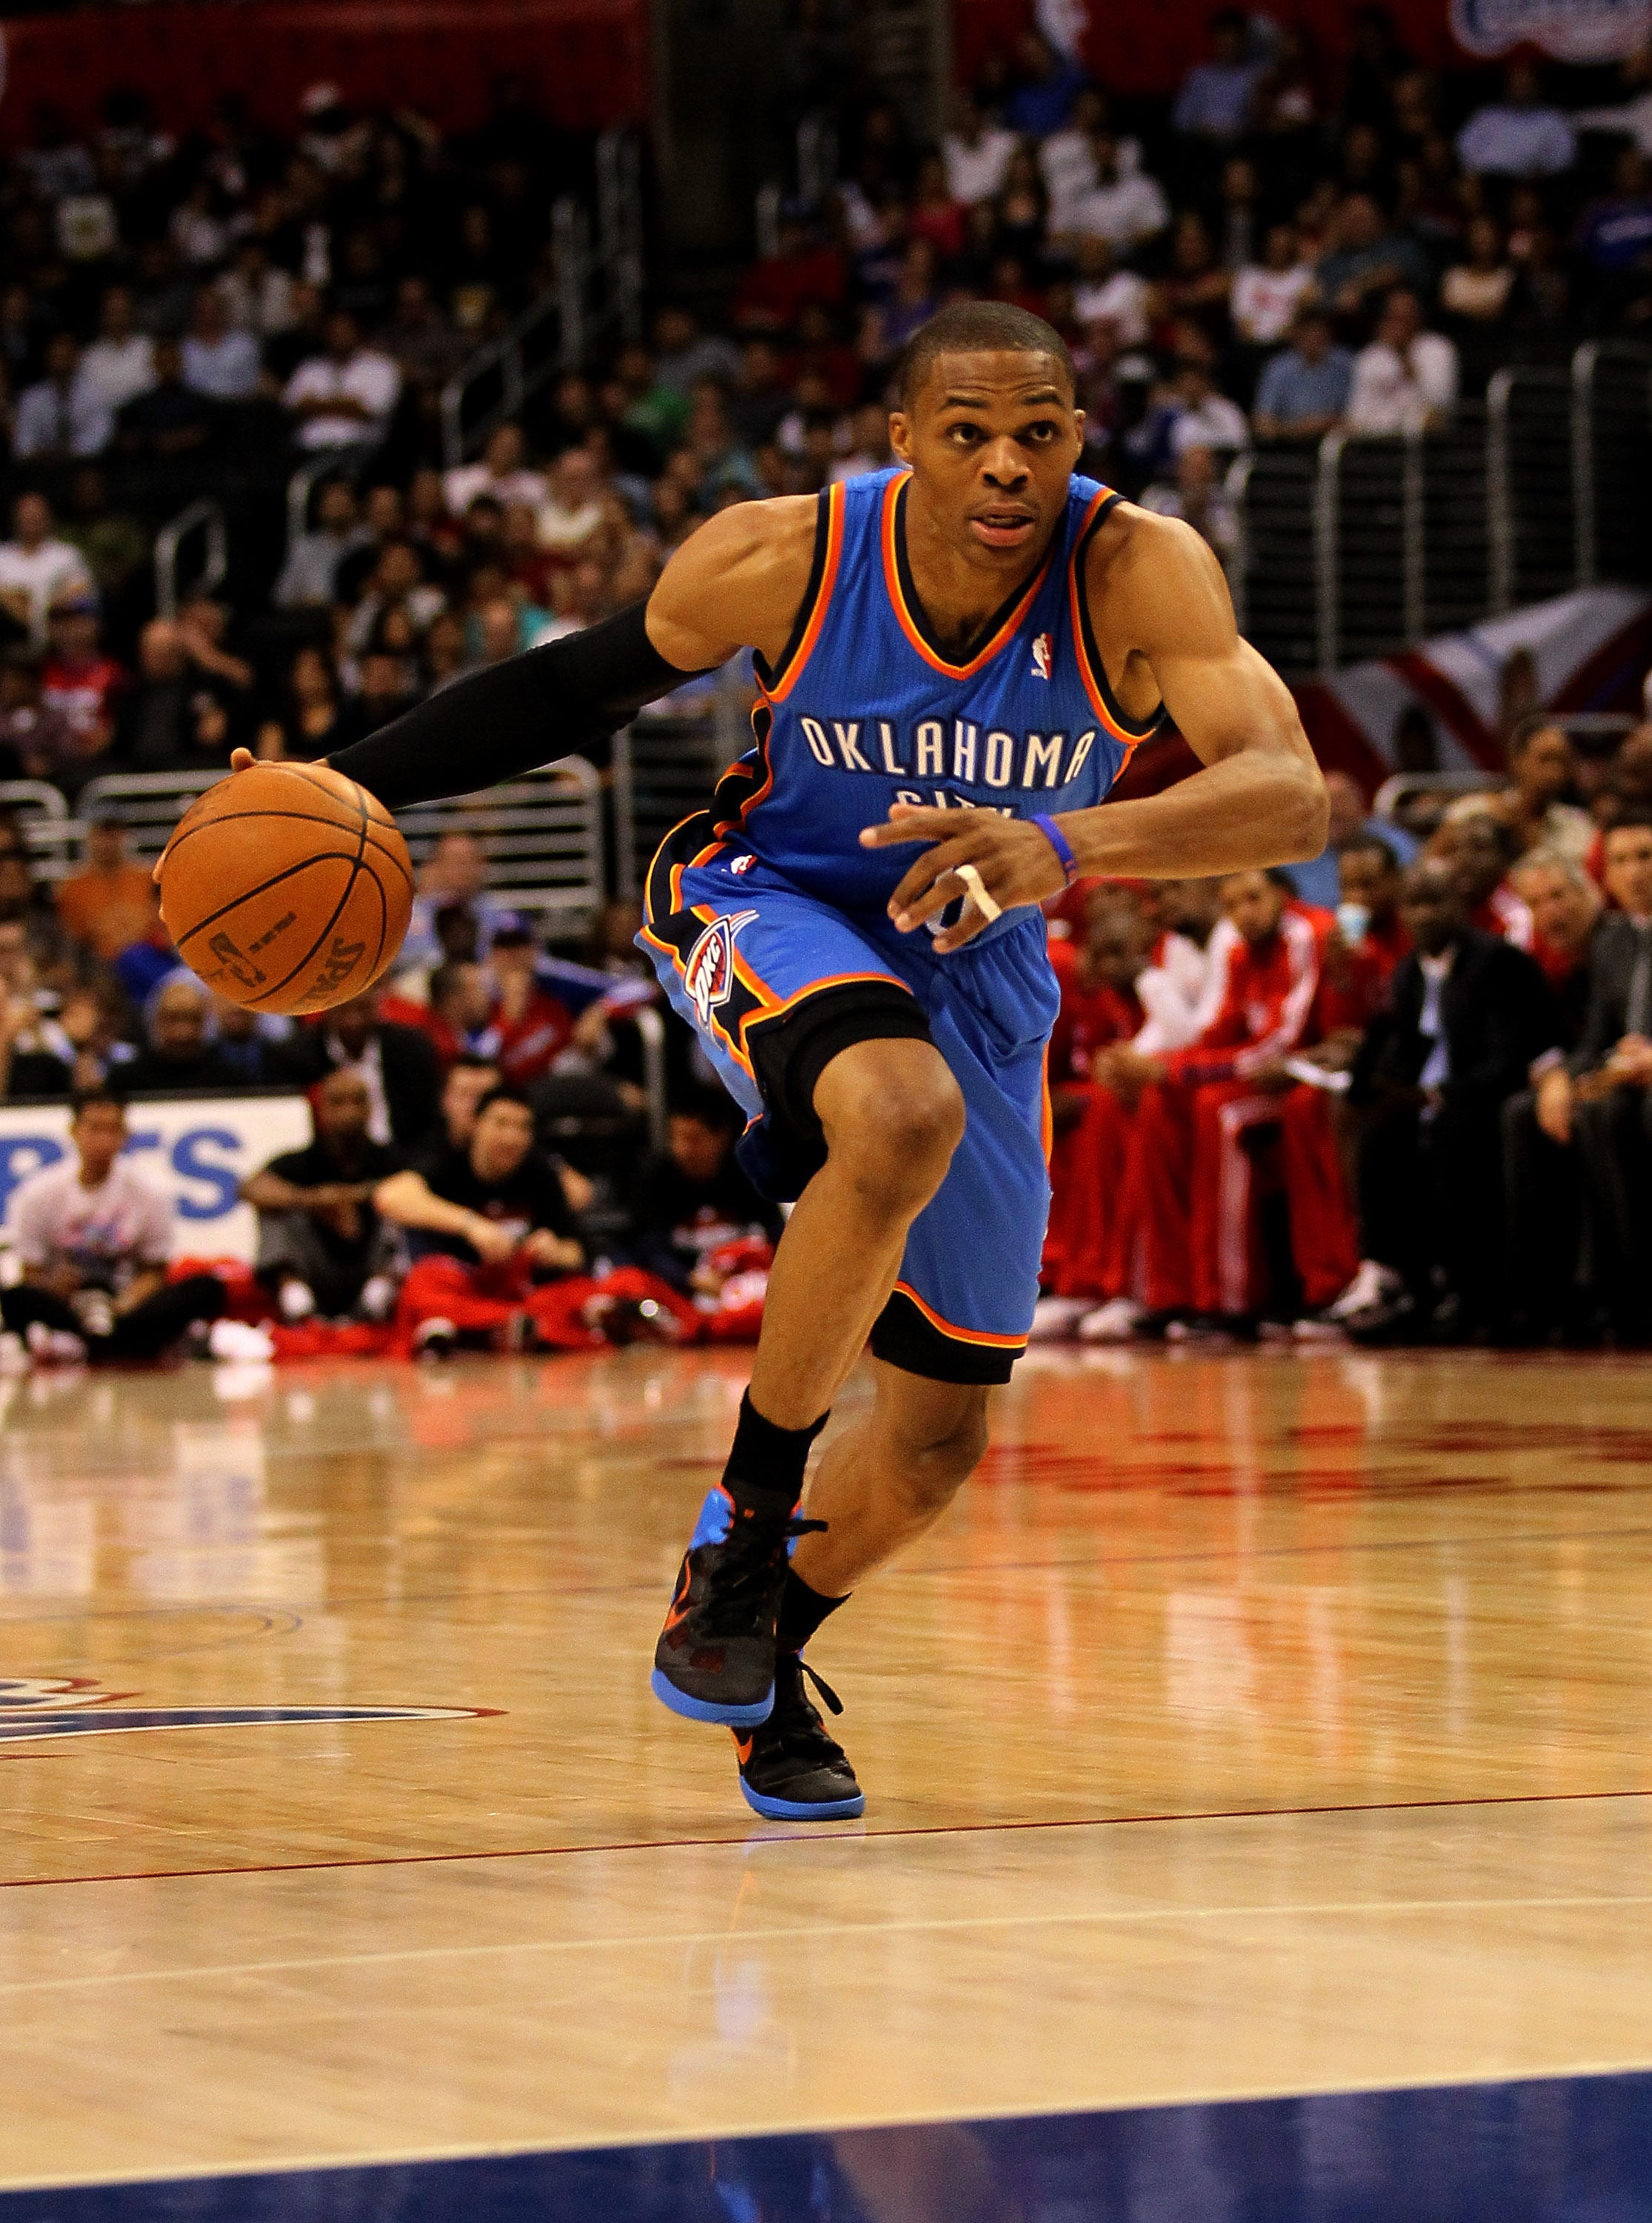 LOS ANGELES - NOVEMBER 3: Russell Westbrook #0 of the Oklahoma City Thunder drives against the Los Angeles Clippers at Staples Center on November 3, 2010 in Los Angeles, California.  NOTE TO USER: User expressly acknowledges and agrees that, by downloadin